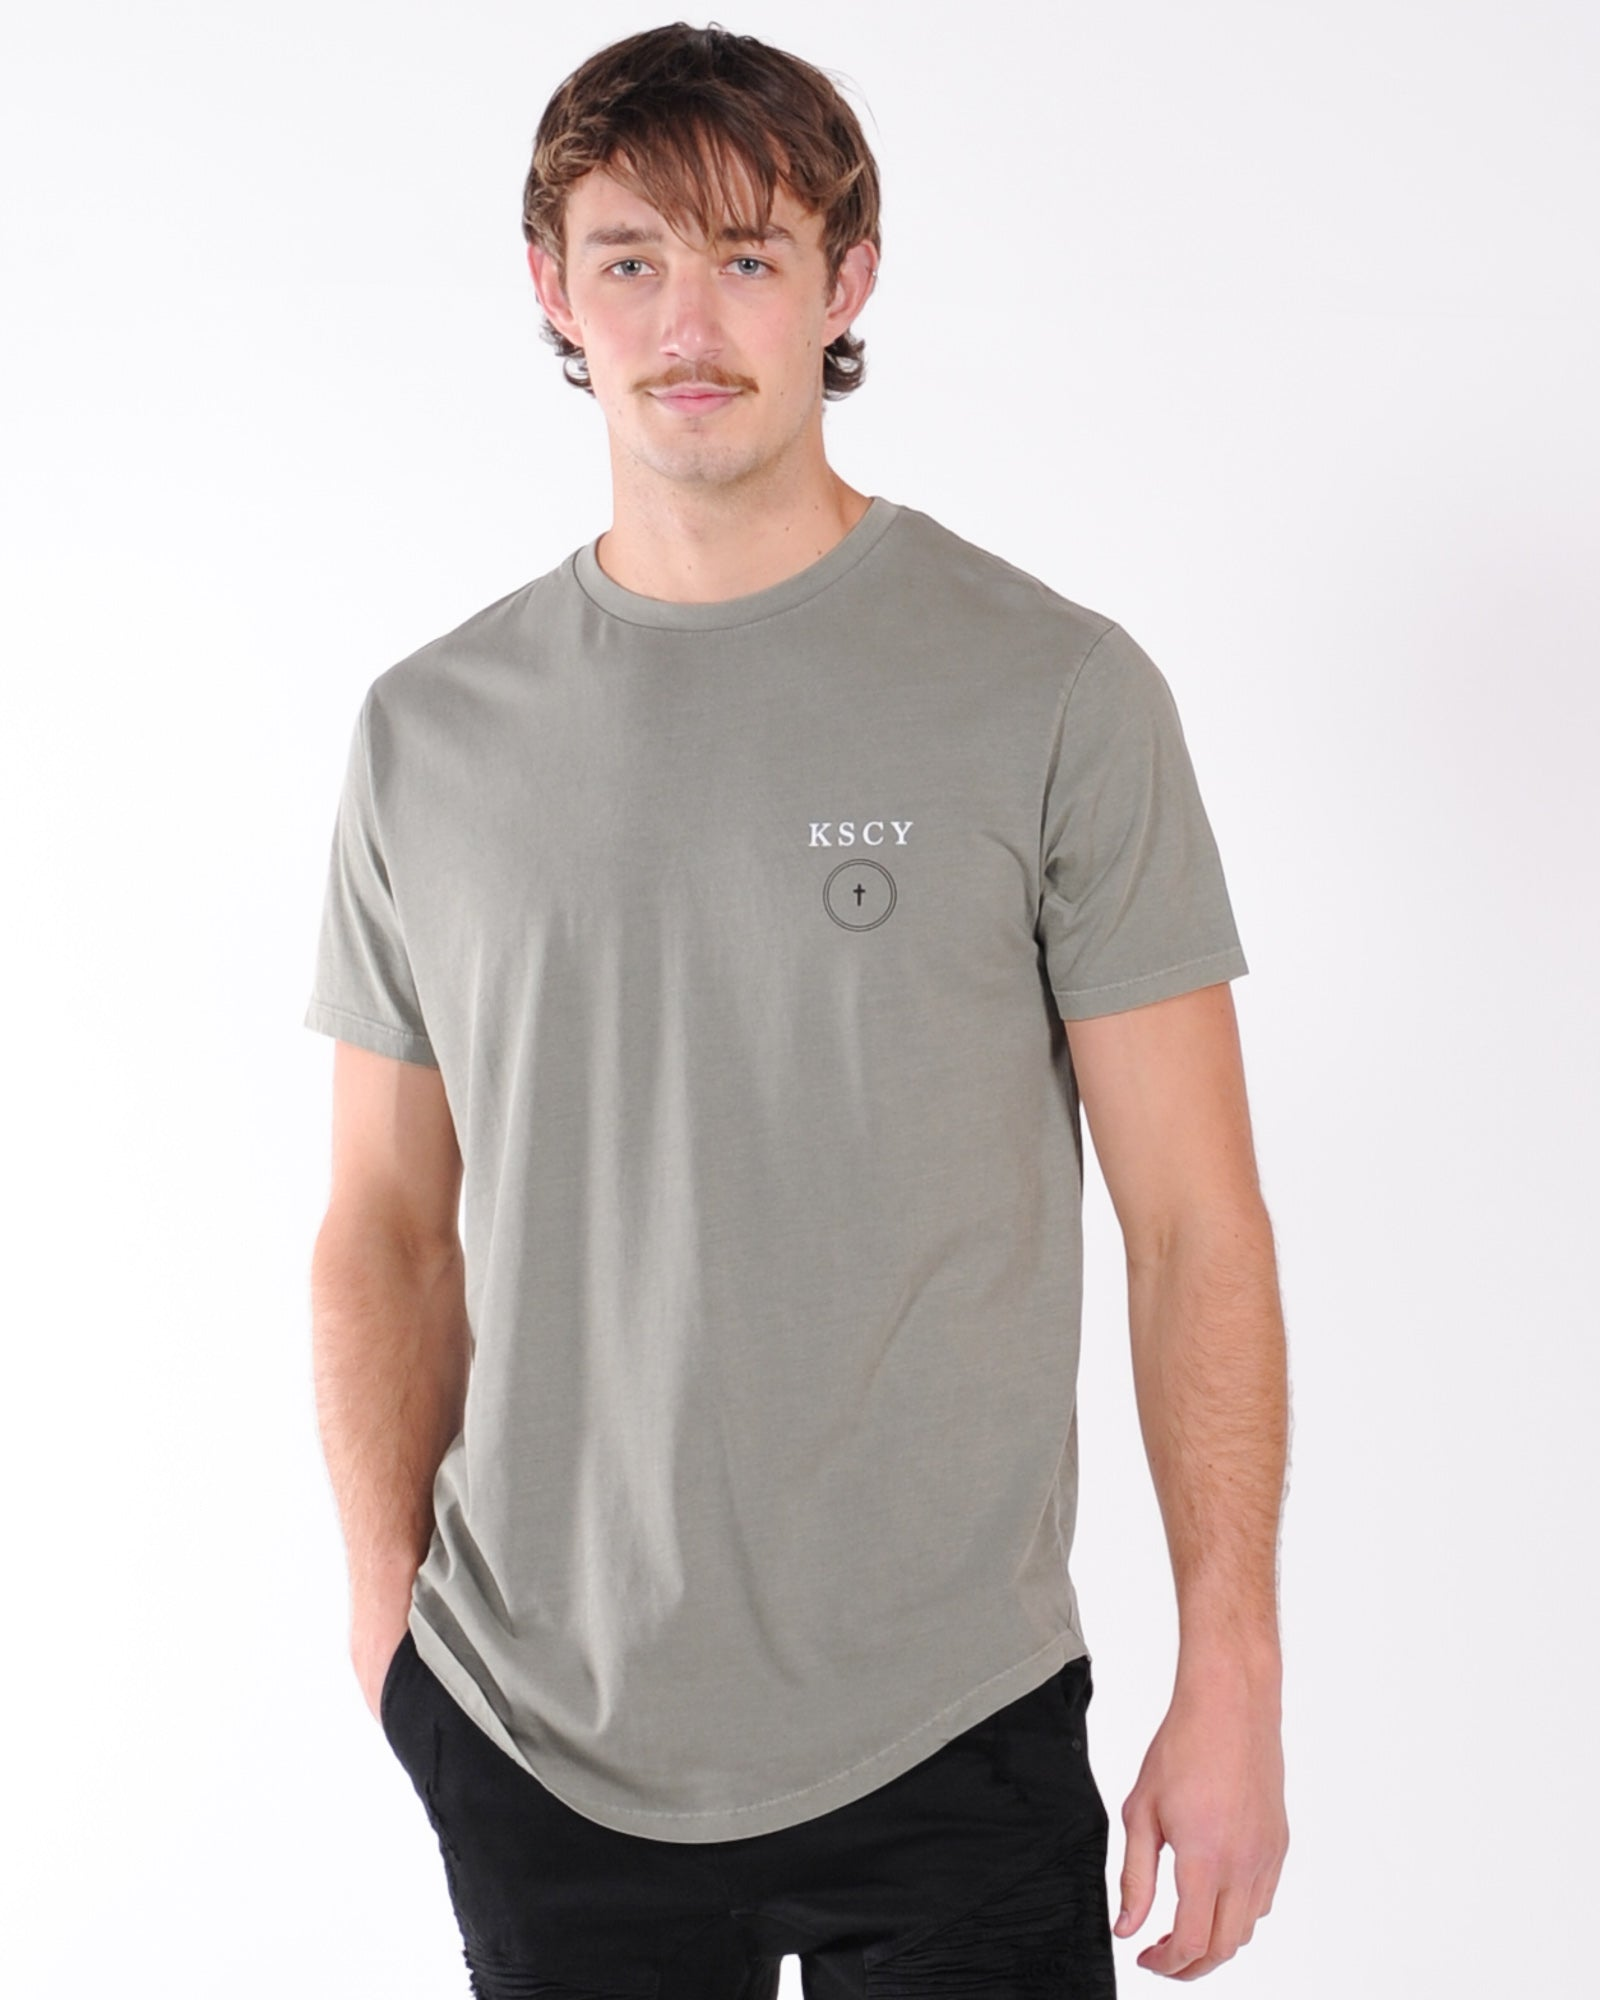 Kiss Chacey Sun Shadow Dual Curved Tee - Pigment Khaki